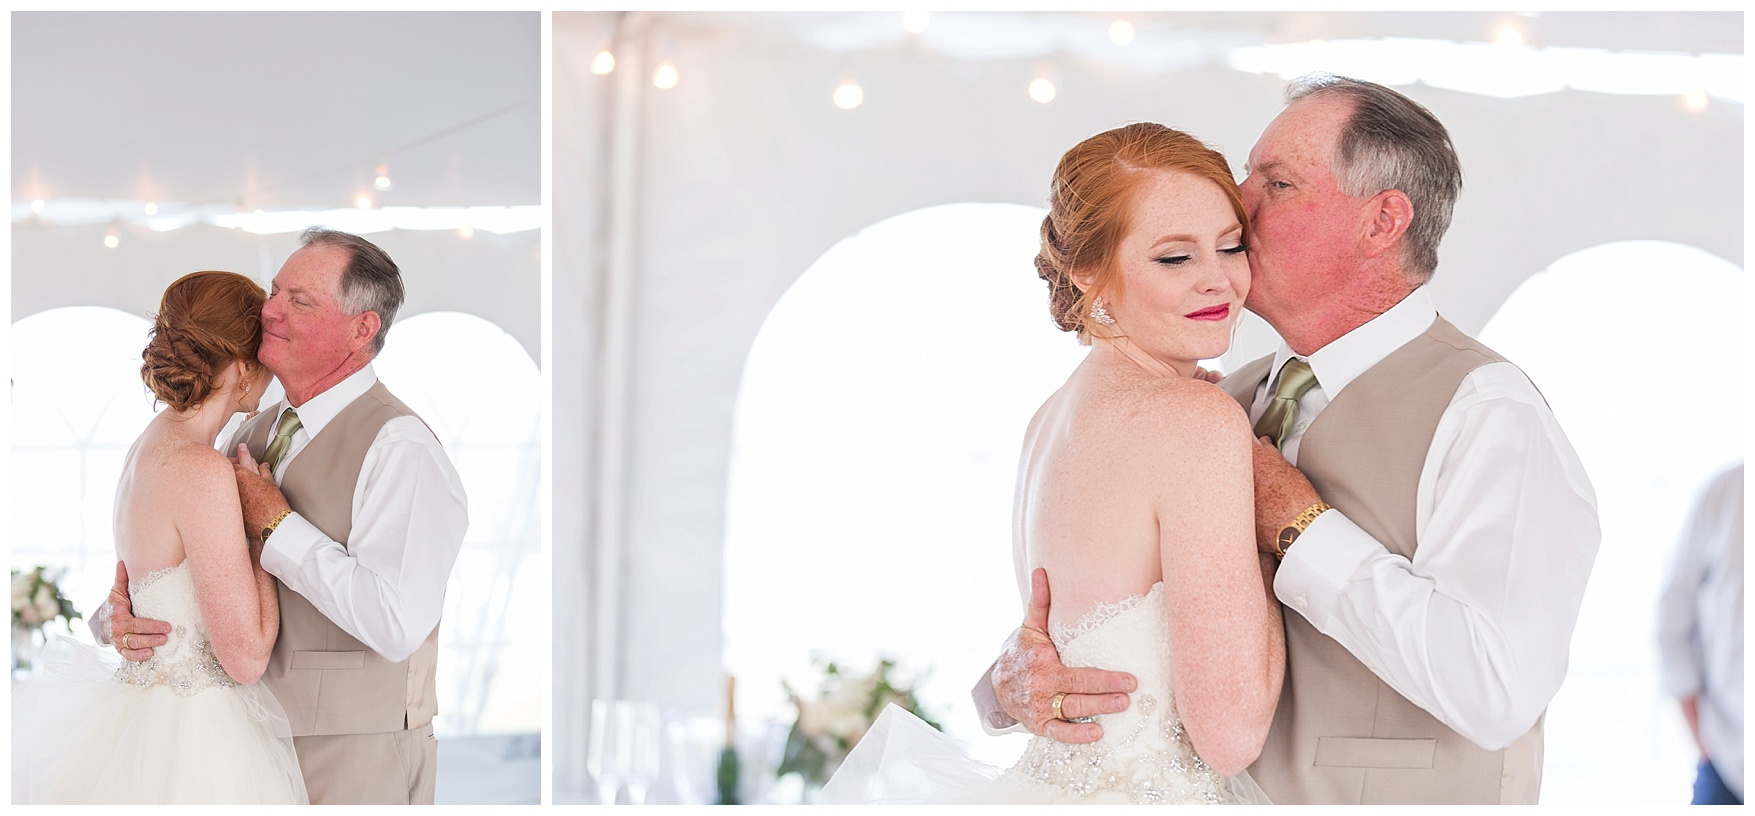 Tent Reception Photos at On the Sunny Slope Farm Wedding  || Harrisonburg, Virginia Wedding Photographer || Lynchburg VA Photographer